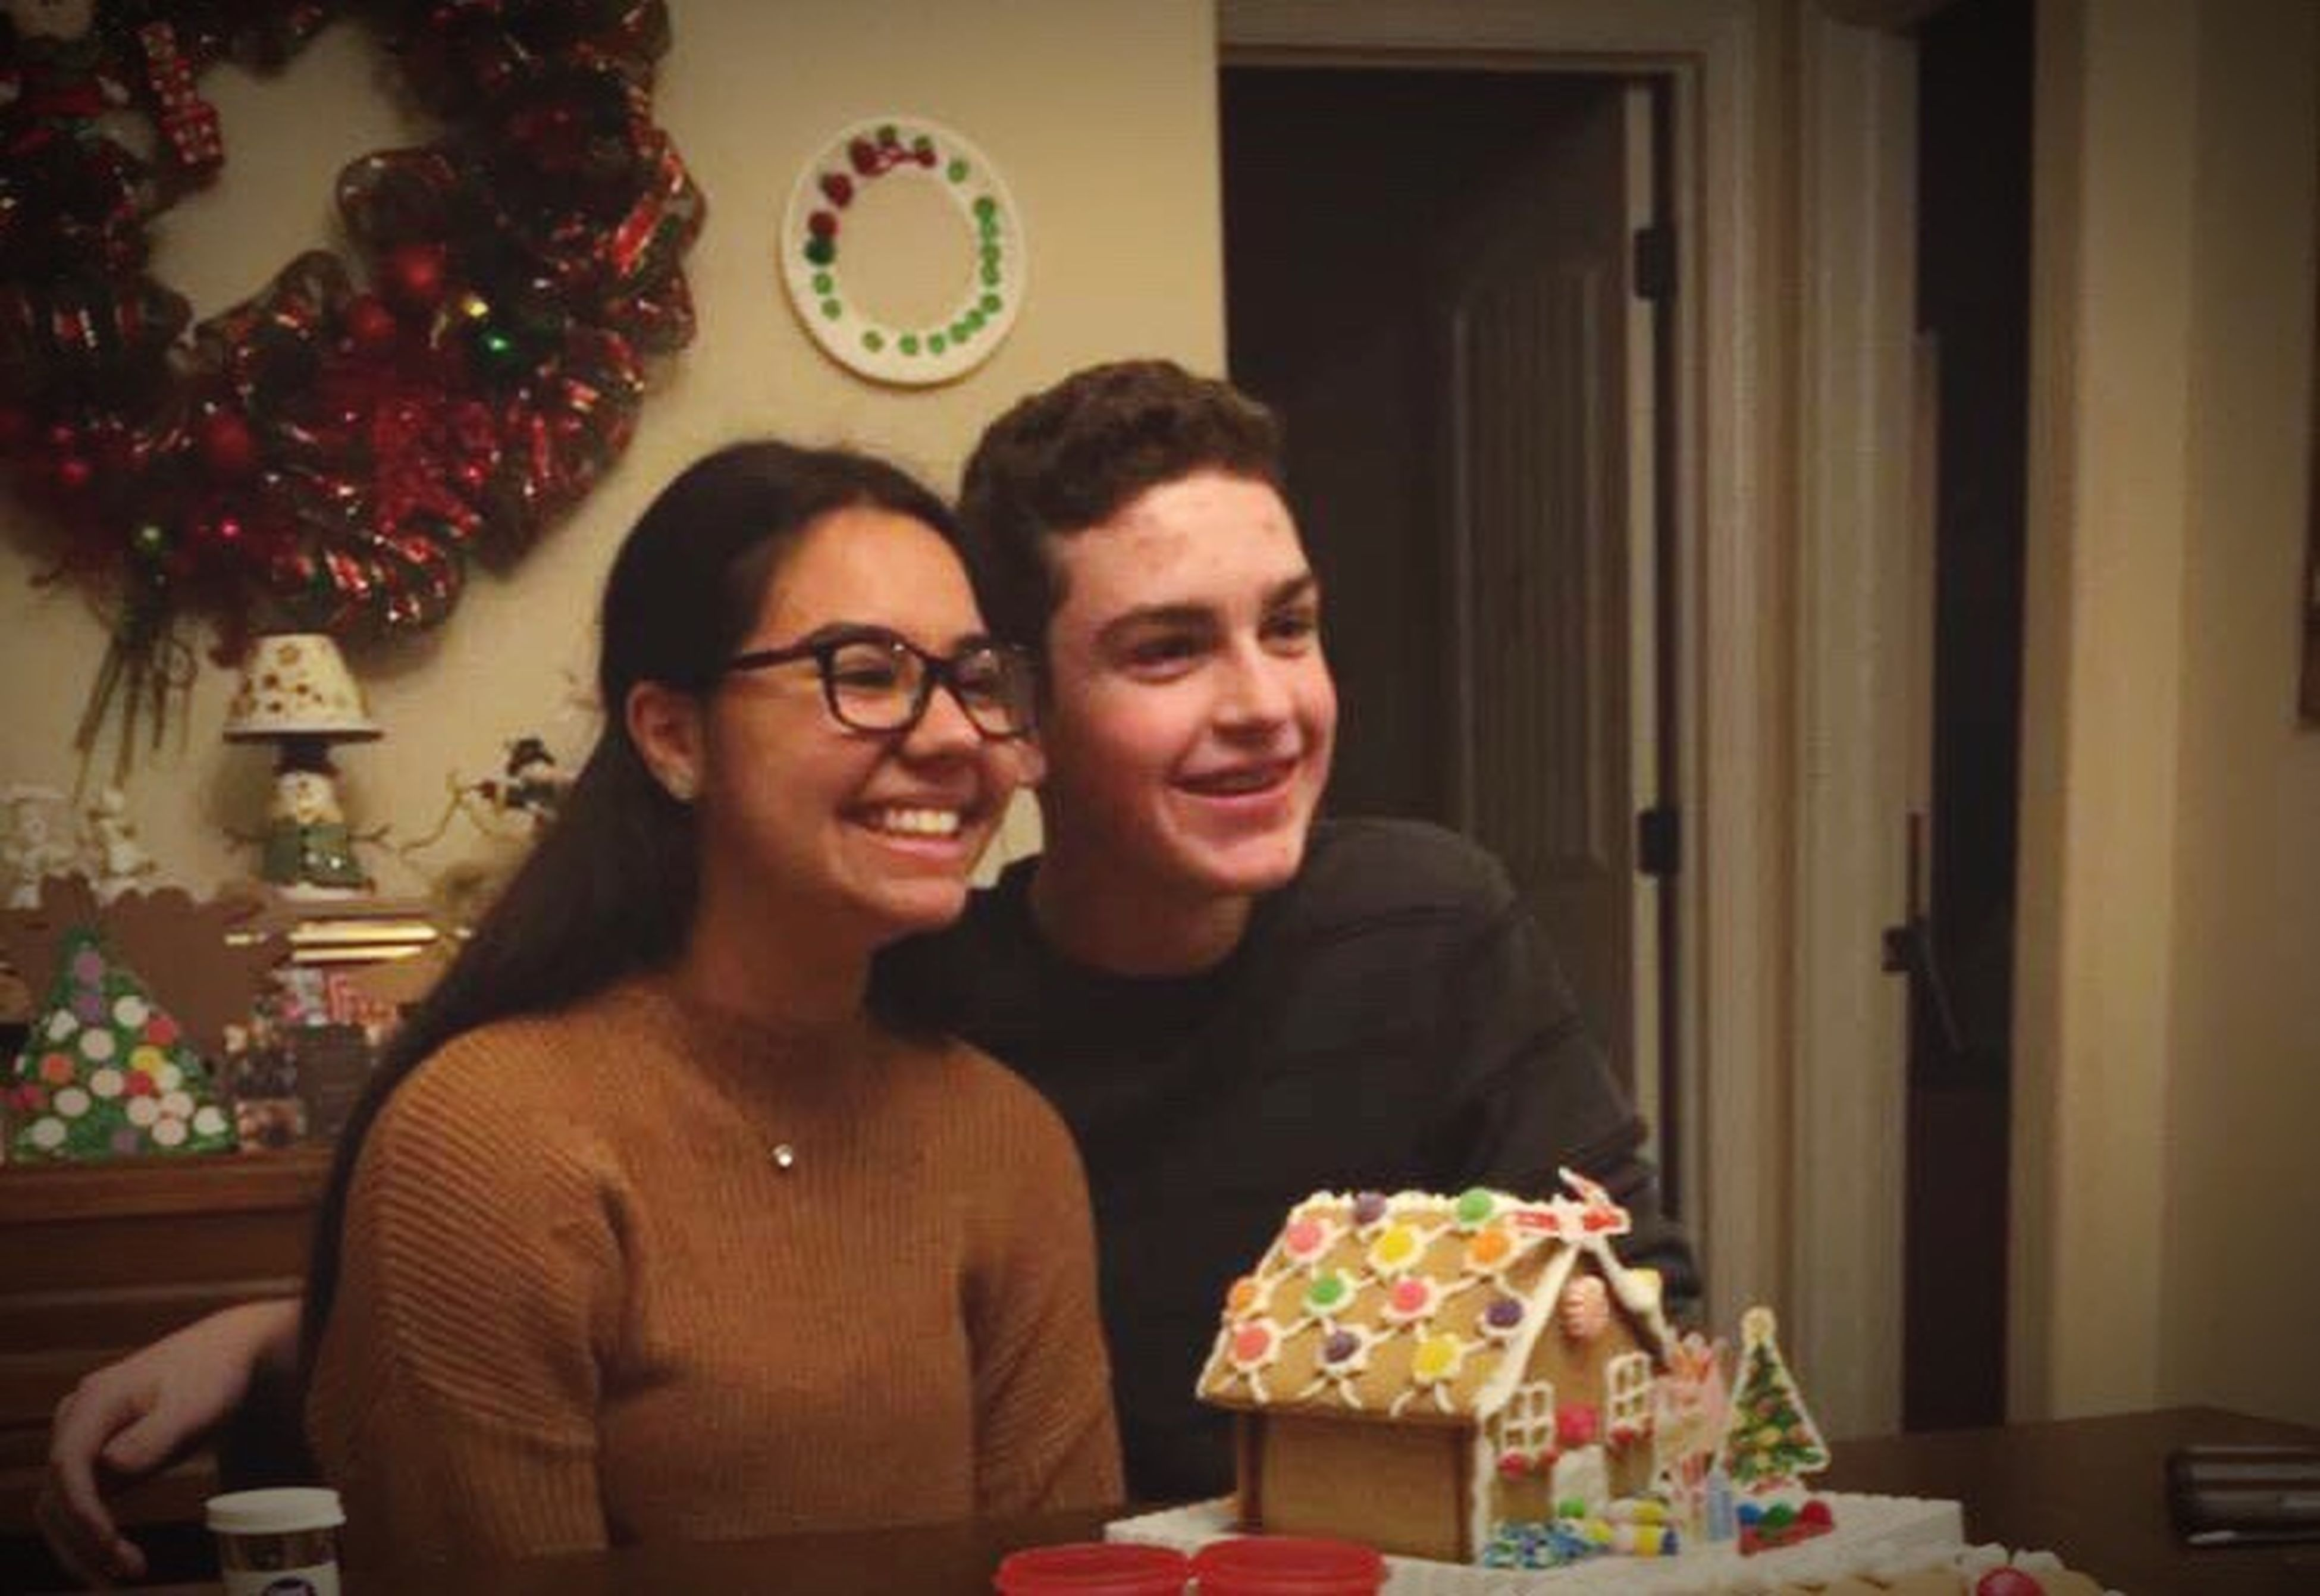 two people, happiness, love, christmas, smiling, gift, giving, celebration, men, cheerful, christmas tree, christmas present, portrait, heterosexual couple, togetherness, women, home interior, adults only, indoors, adult, people, friendship, christmas decoration, tree, young adult